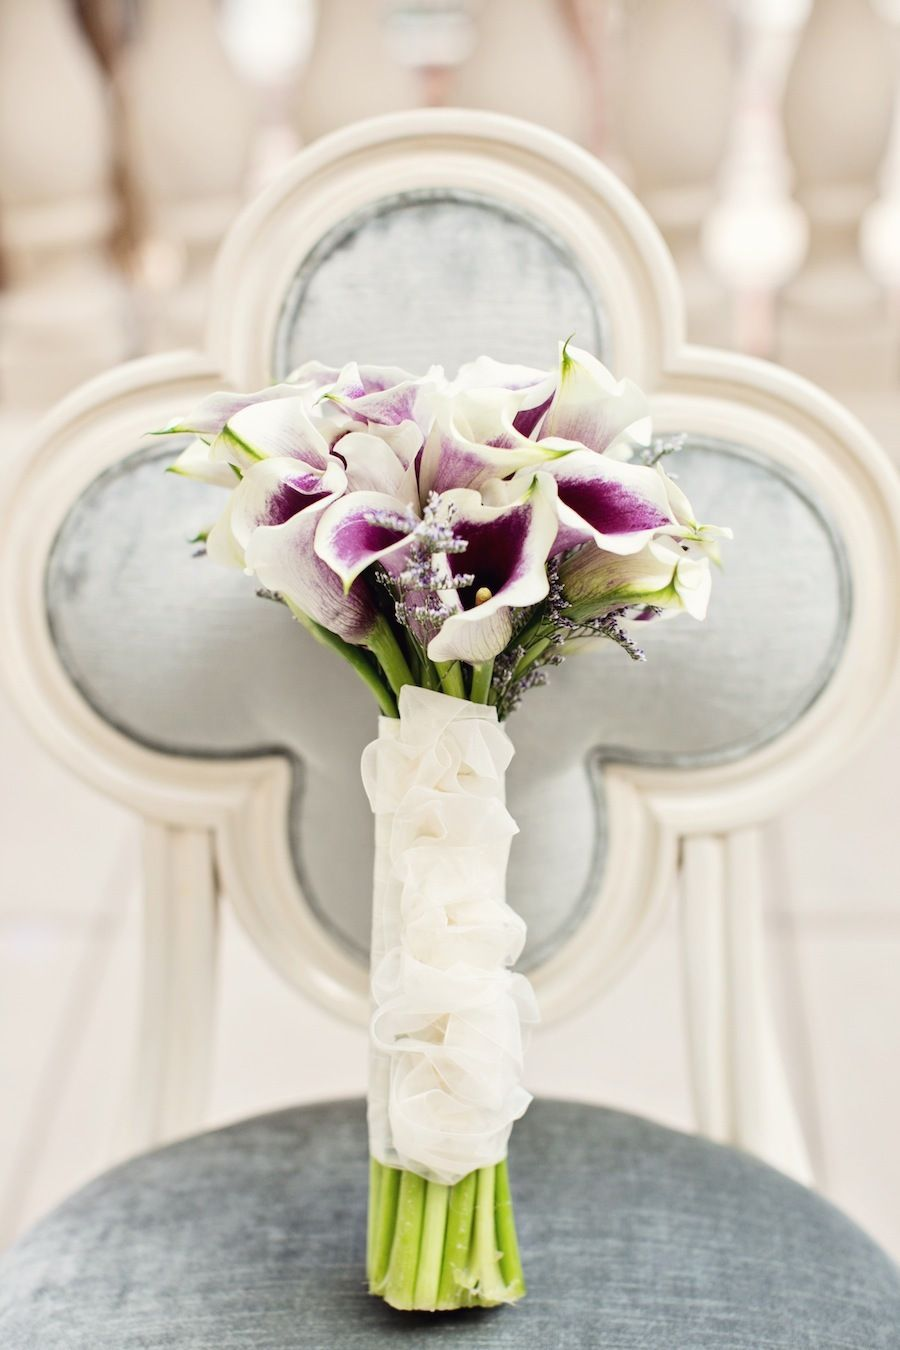 San Antonio Wedding At Eilan Hotel And Spa From Mint Photography